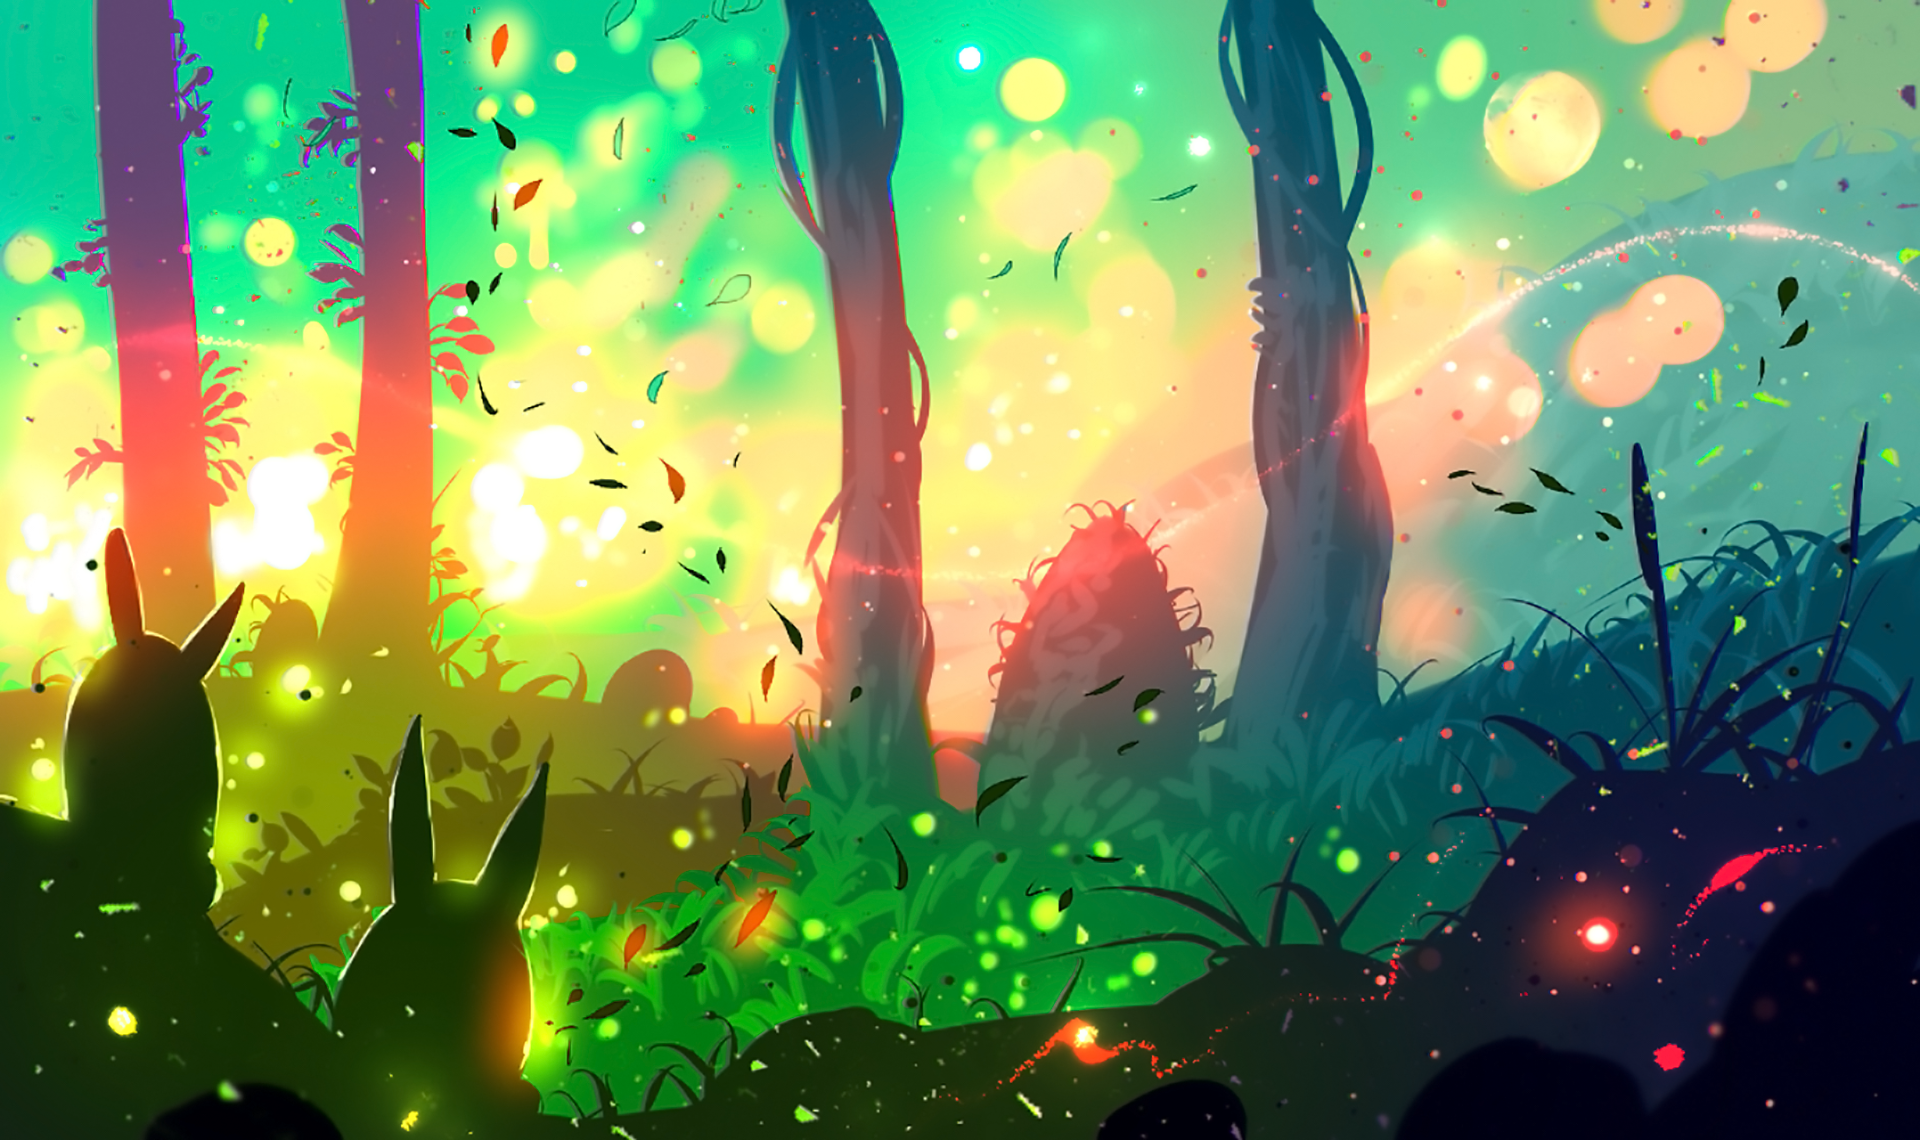 Fantasy - Artistic  Bunny Forest Tree Sunset Sunshine Fantasy Wallpaper